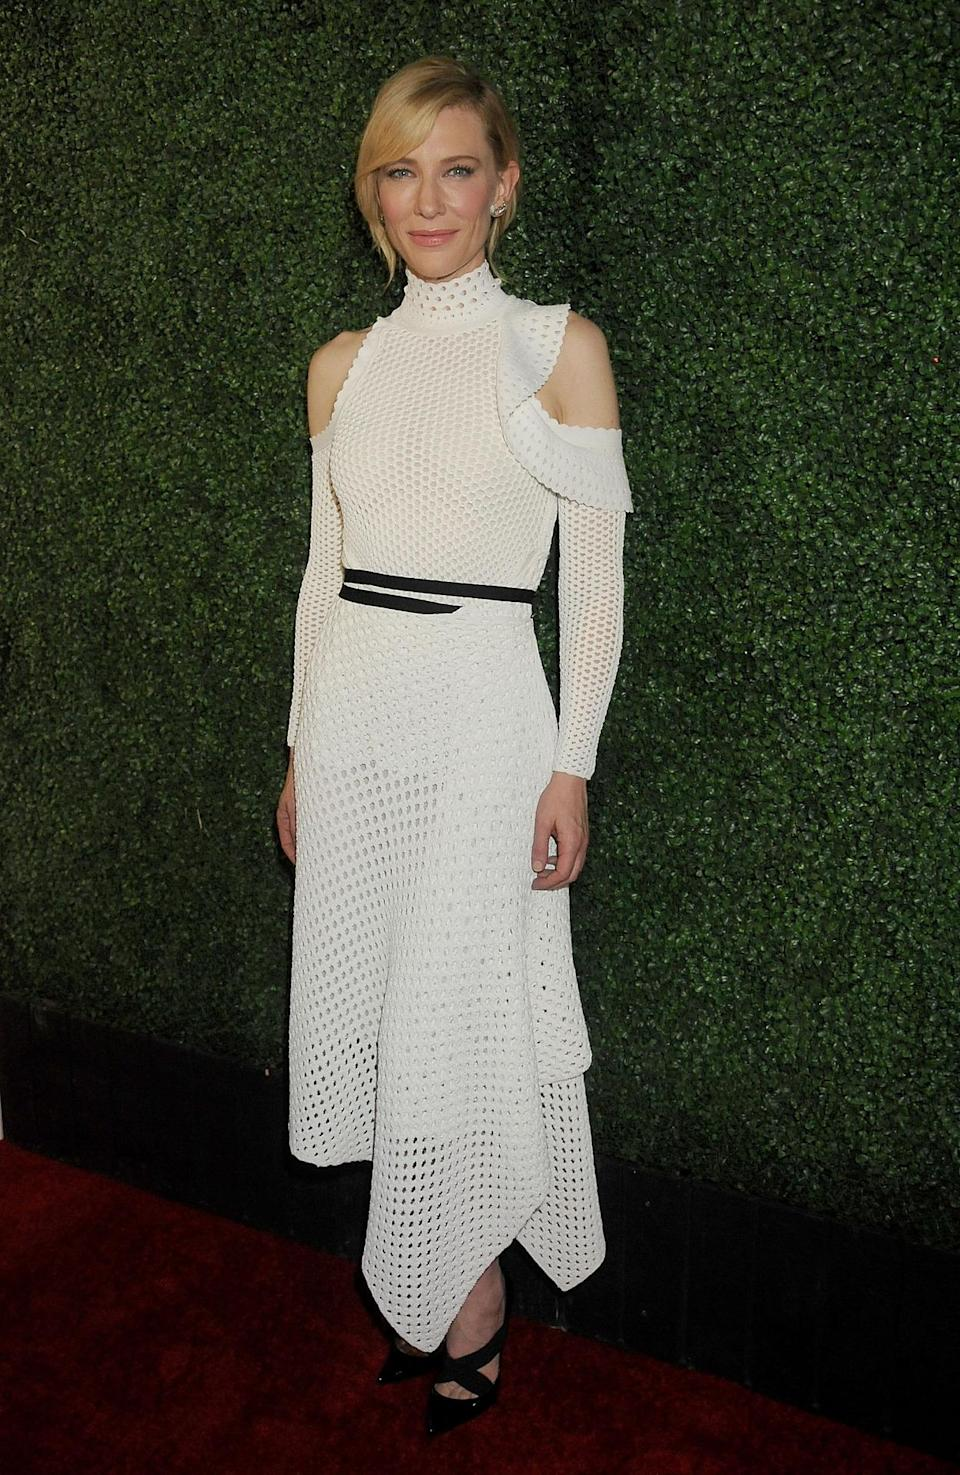 <p>Cate Blanchett loves taking risks on the red carpet. While promoting her new film, <i>Truth</i>, in LA, the Academy Award-winner wore a white knitted Proenza Schouler dress fresh off the runway, paired with slick black Christian Louboutin pumps. <i>Photo: Getty Images</i></p>